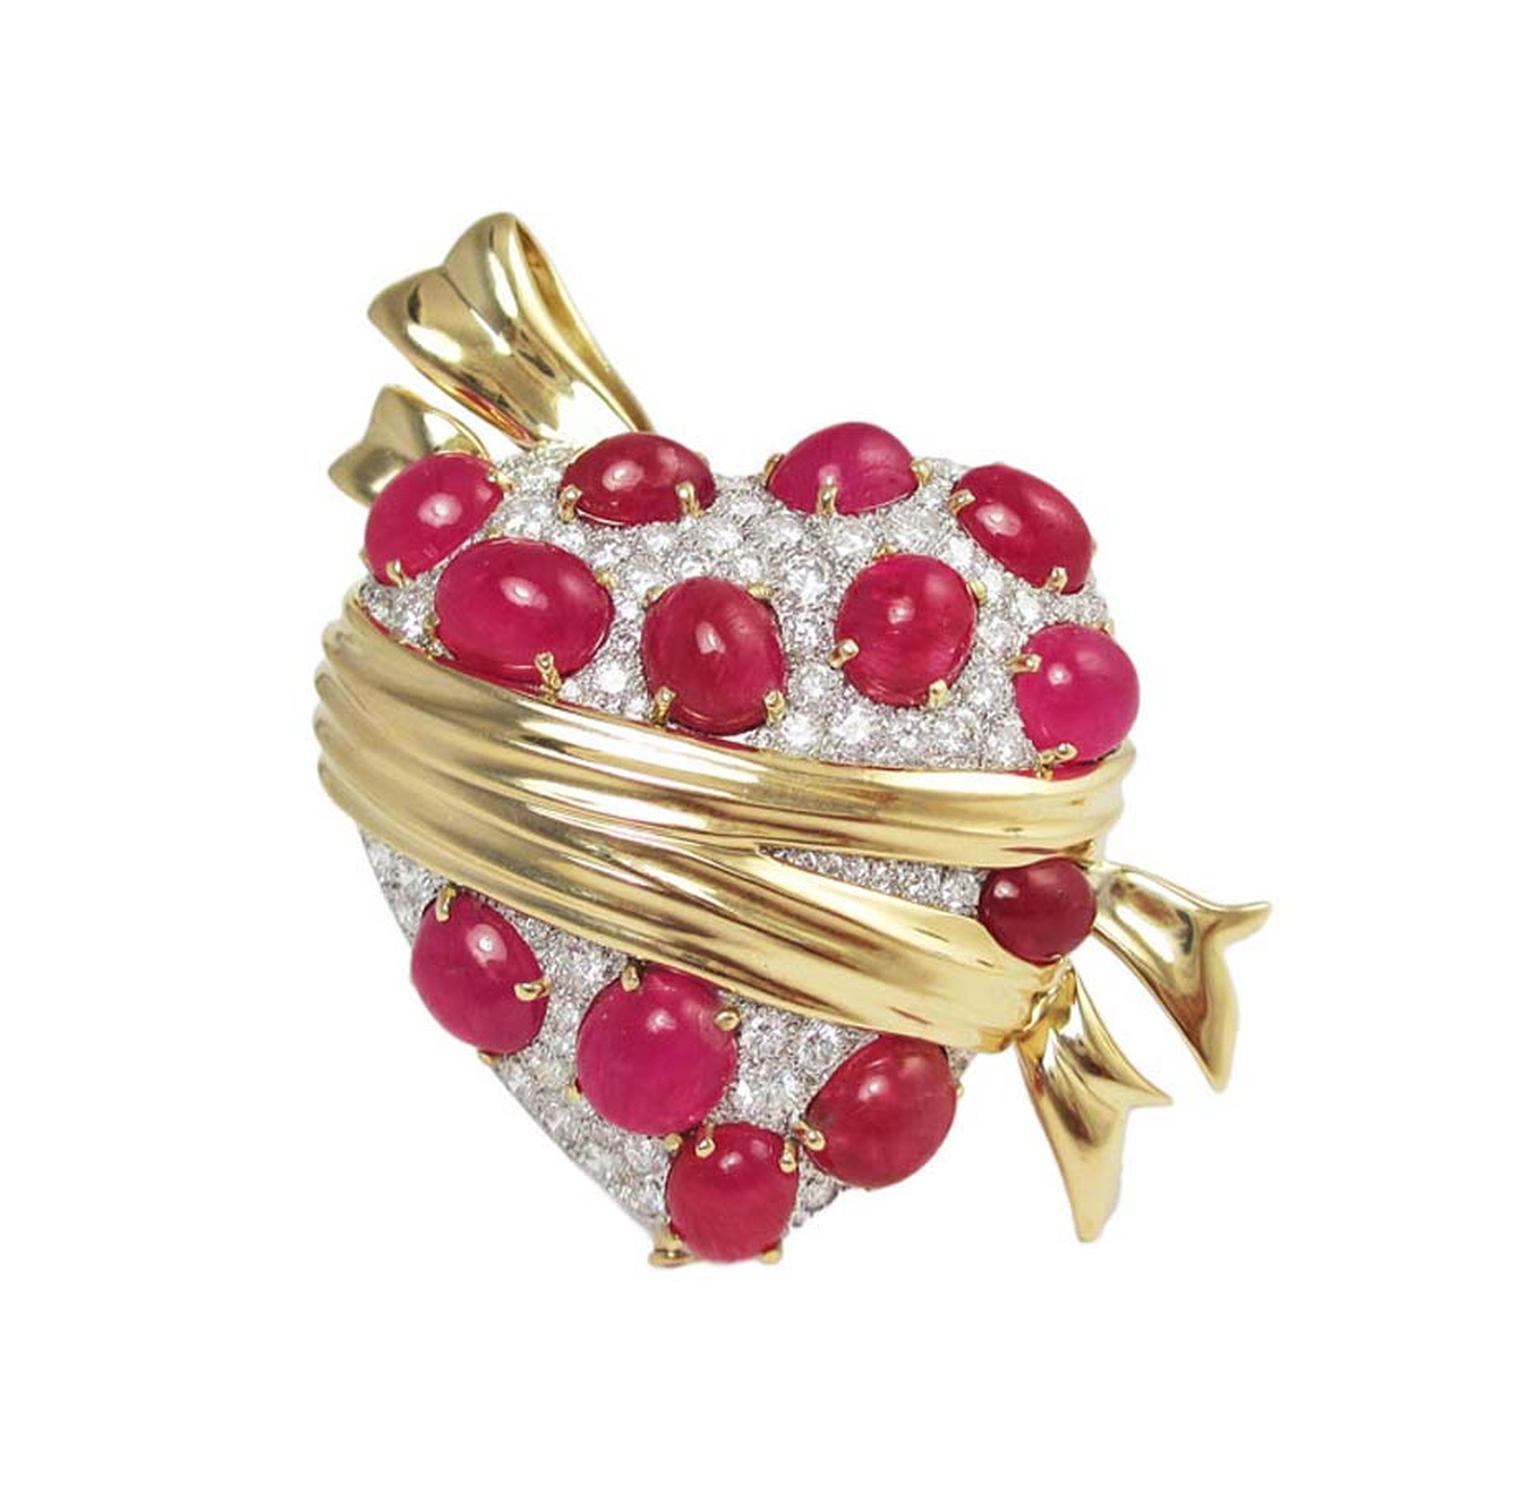 Verdura Sashed Heart brooch, set with rubies and diamonds in gold, was first commissioned by Tyrone Power for his wife Anabella in 1941 and has been recreated to celebrate Verdura's 75th anniversary.